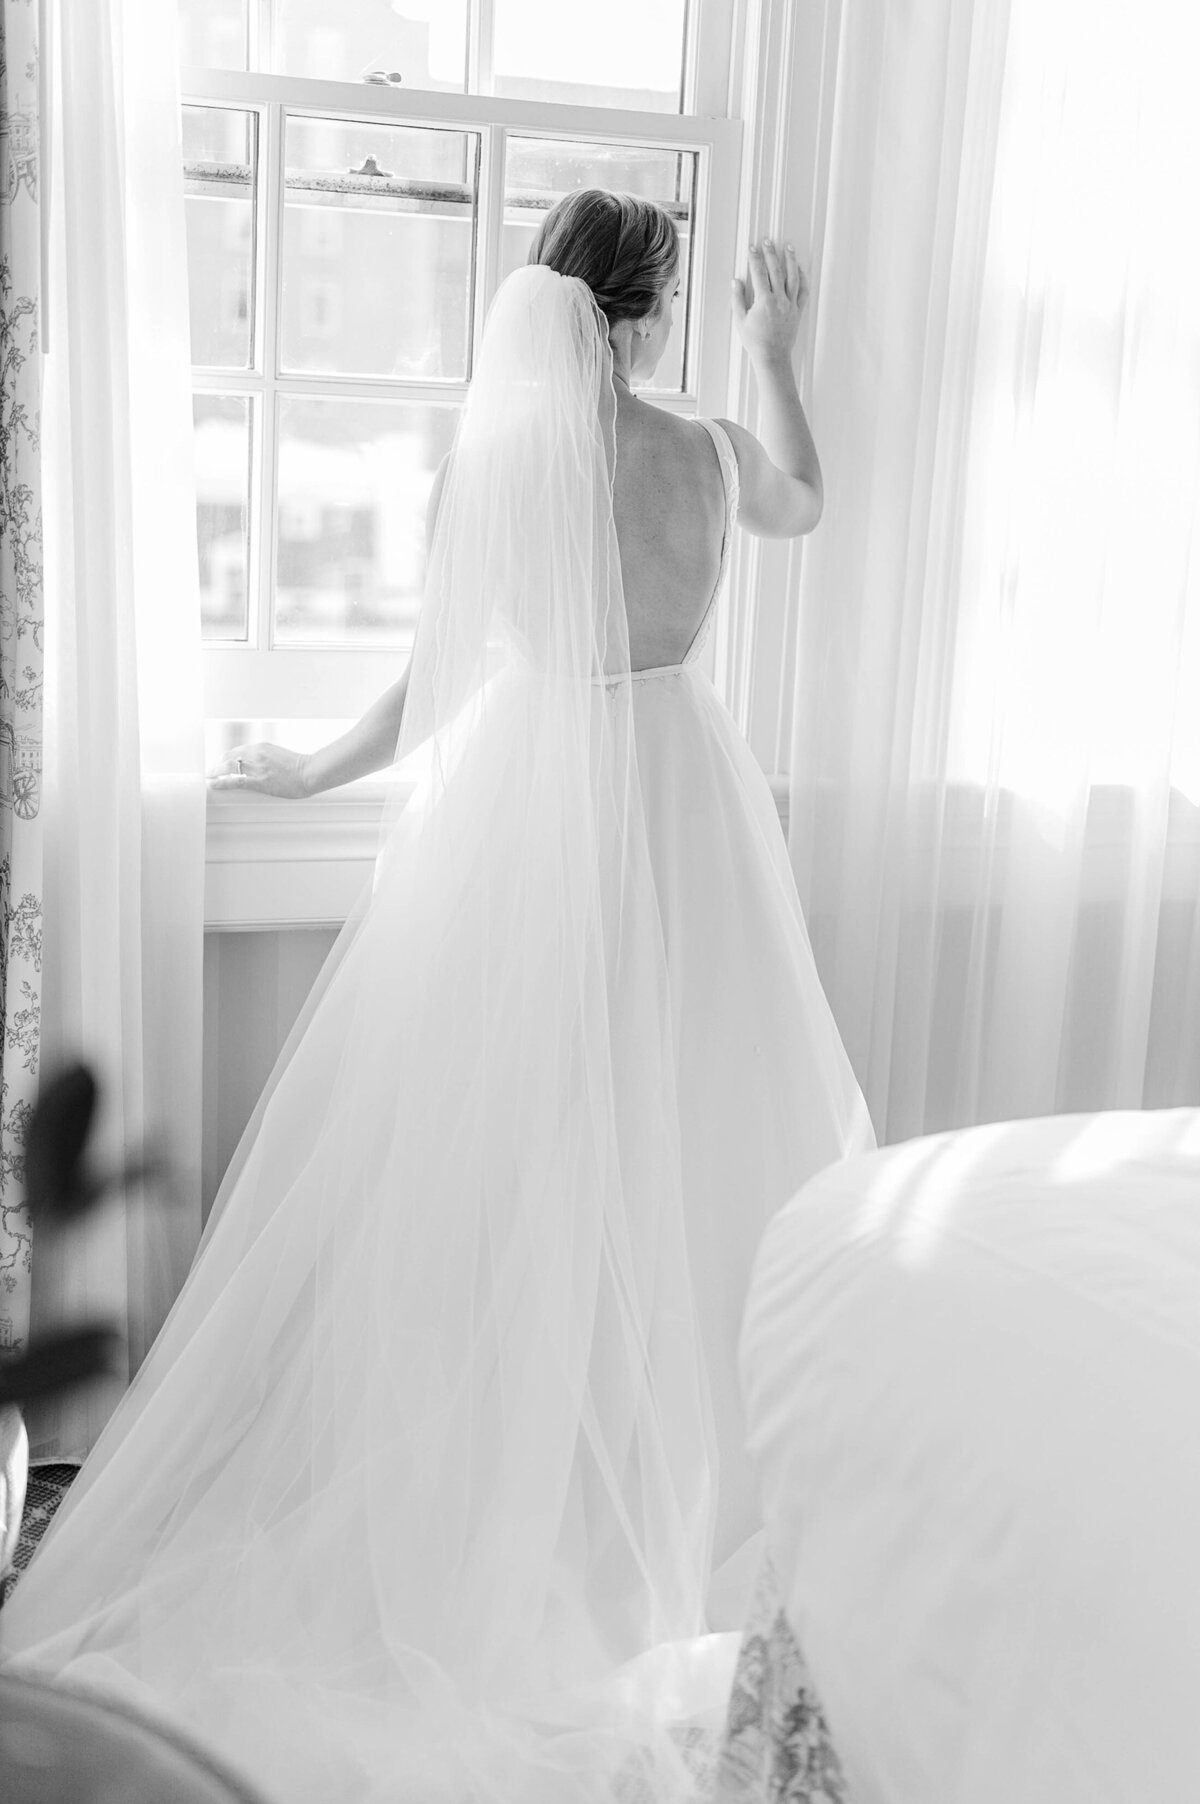 Jennifer Bosak Photography - DC Area Wedding Photography - DC, Virginia, Maryland - Jeanna + Michael - Decatur House Wedding - 55